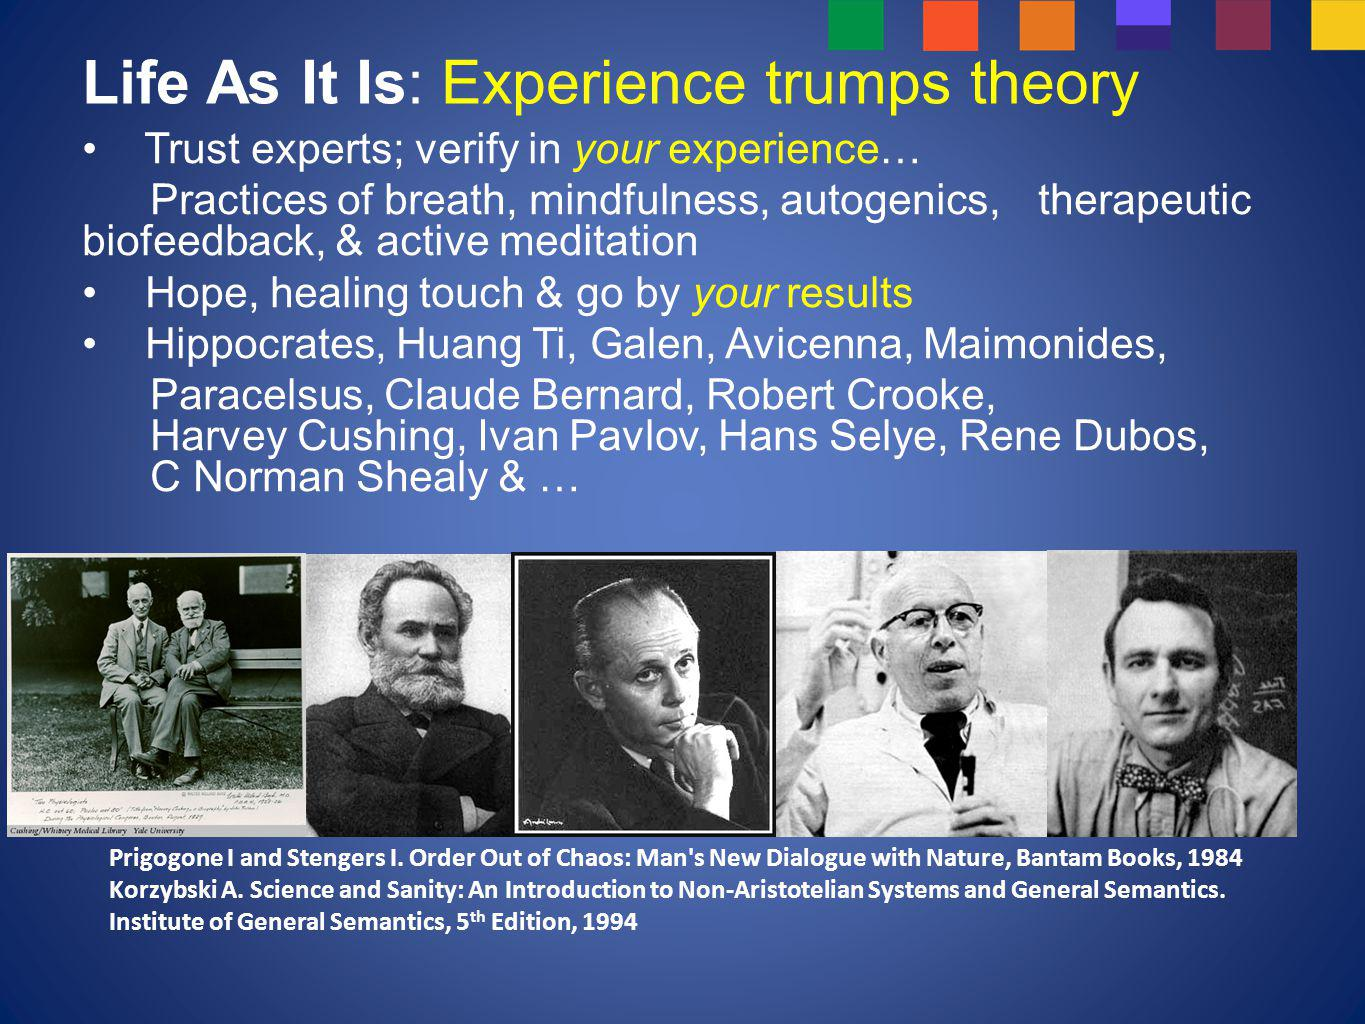 Life As It Is: Experience trumps theory Trust experts; verify in your experience… Practices of breath, mindfulness, autogenics, therapeutic biofeedback, & active meditation Hope, healing touch & go by your results Hippocrates, Huang Ti, Galen, Avicenna, Maimonides, Paracelsus, Claude Bernard, Robert Crooke, Harvey Cushing, Ivan Pavlov, Hans Selye, Rene Dubos, C Norman Shealy & … Prigogone I and Stengers I.